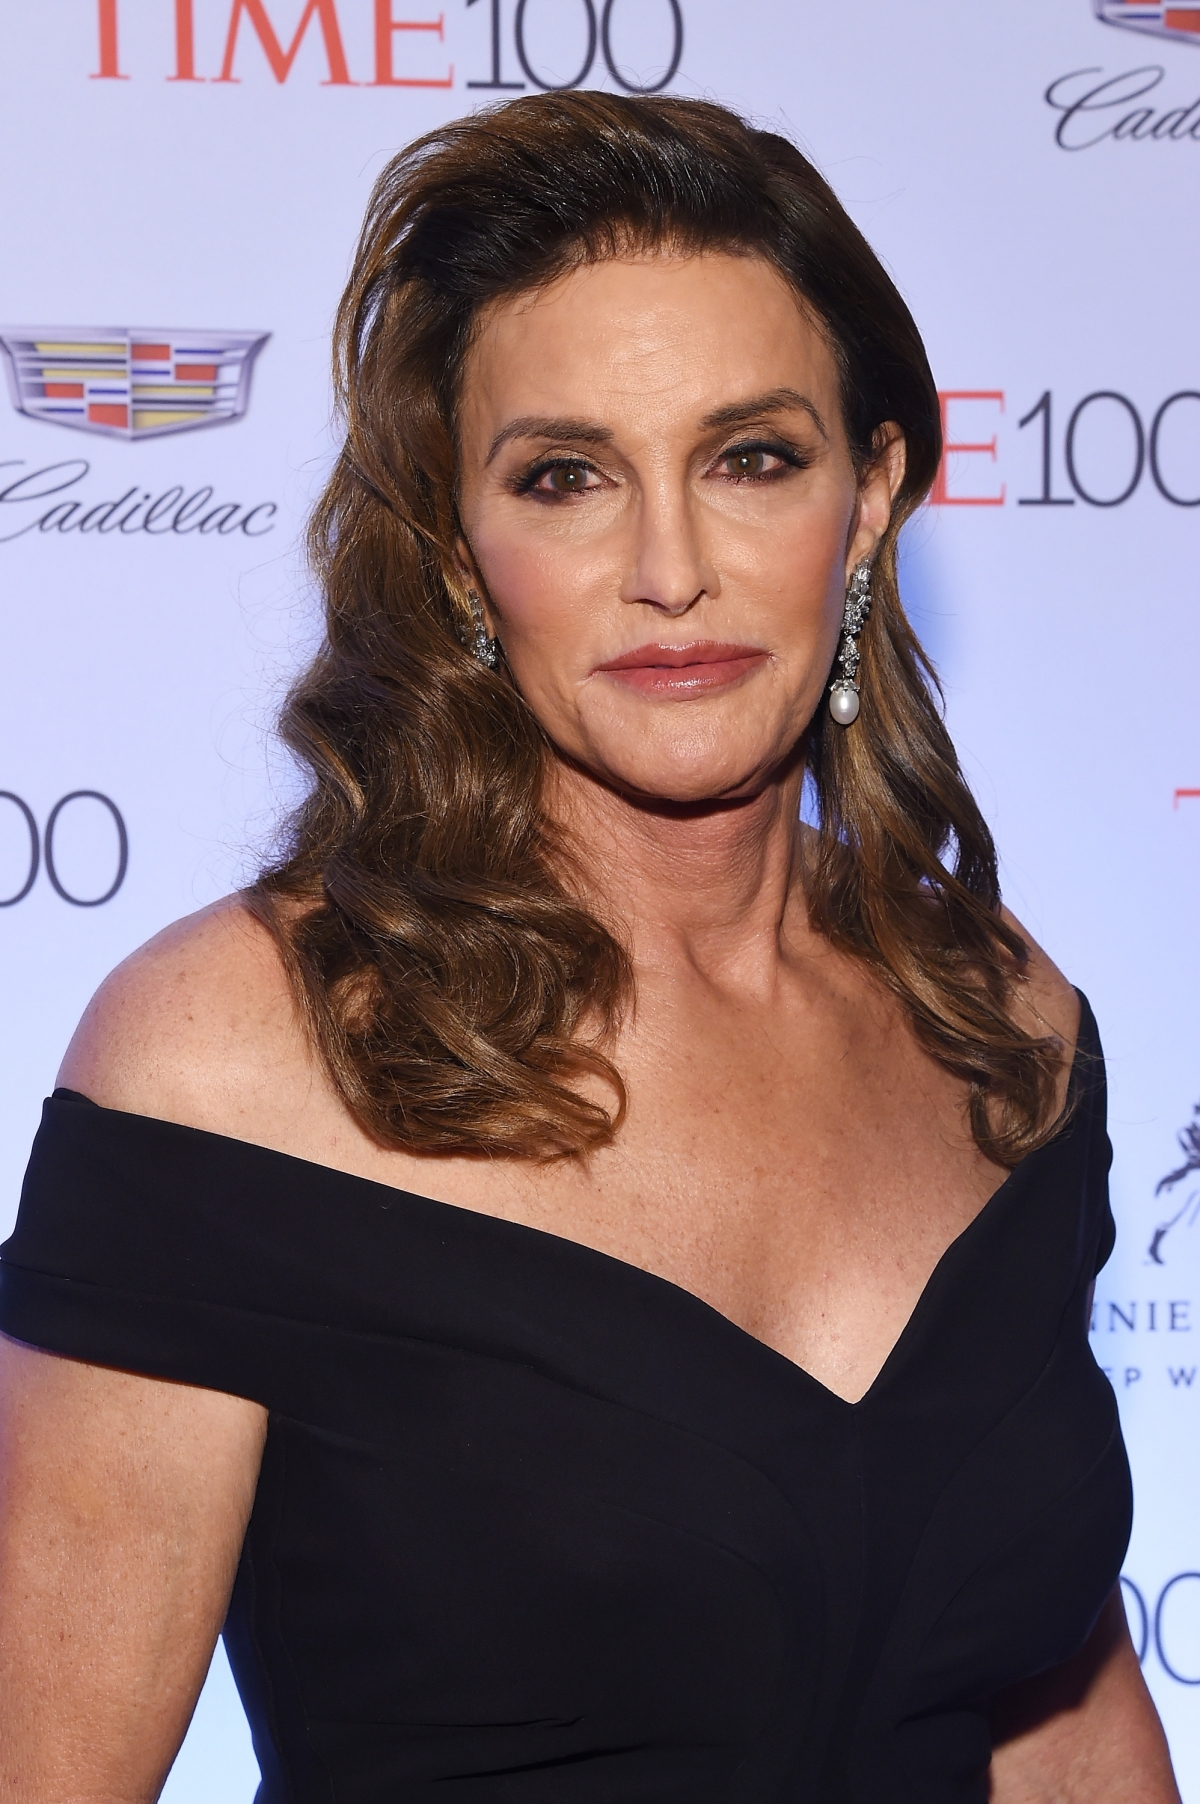 caitlyn jenner - photo #2